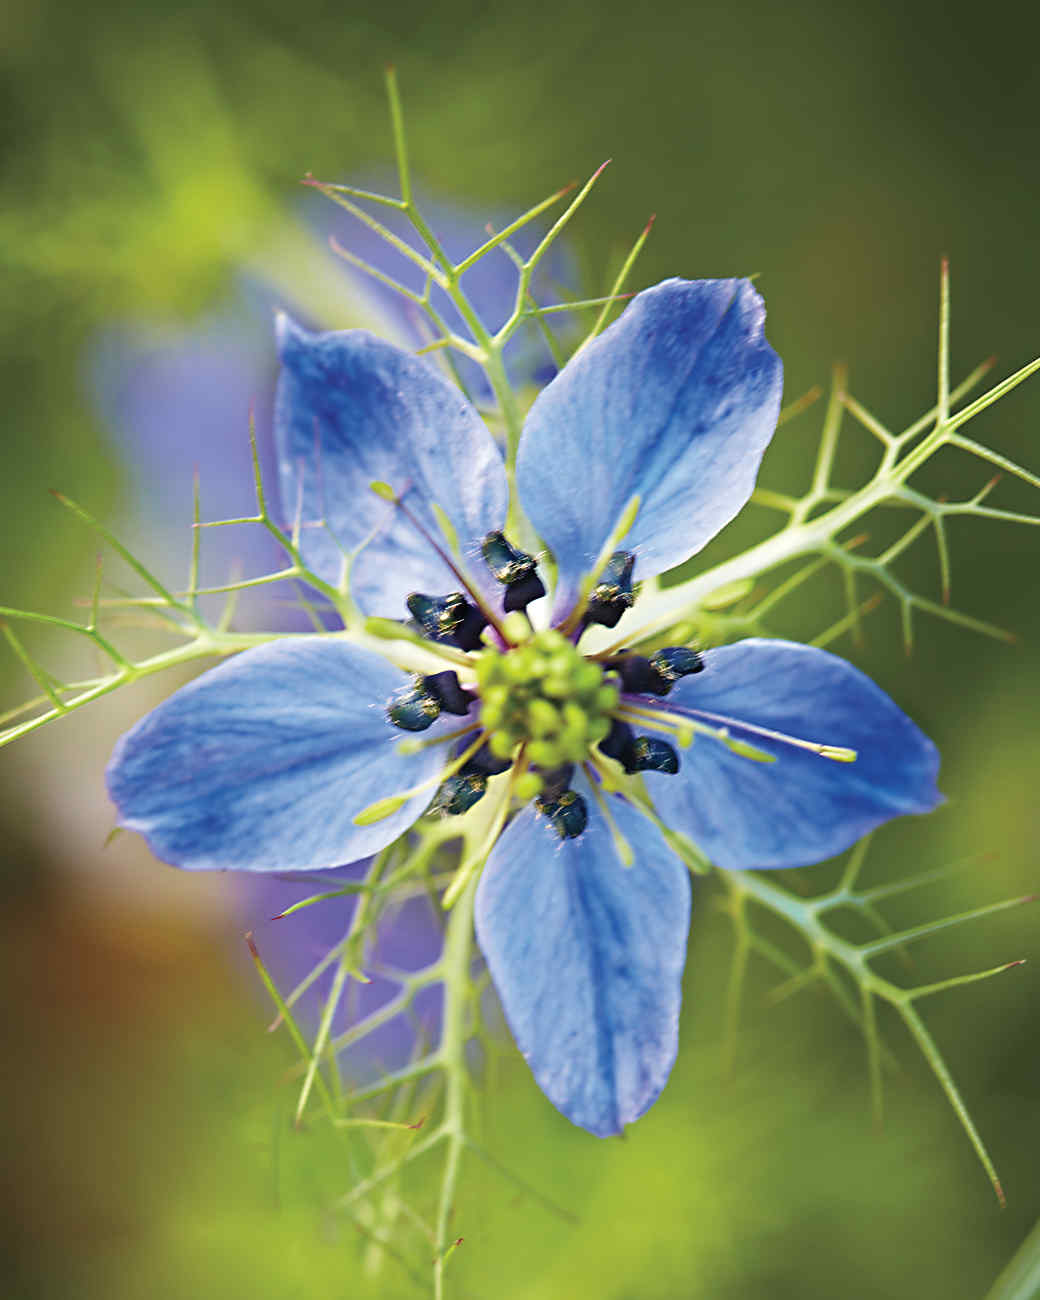 blueflower2-md110341.jpg